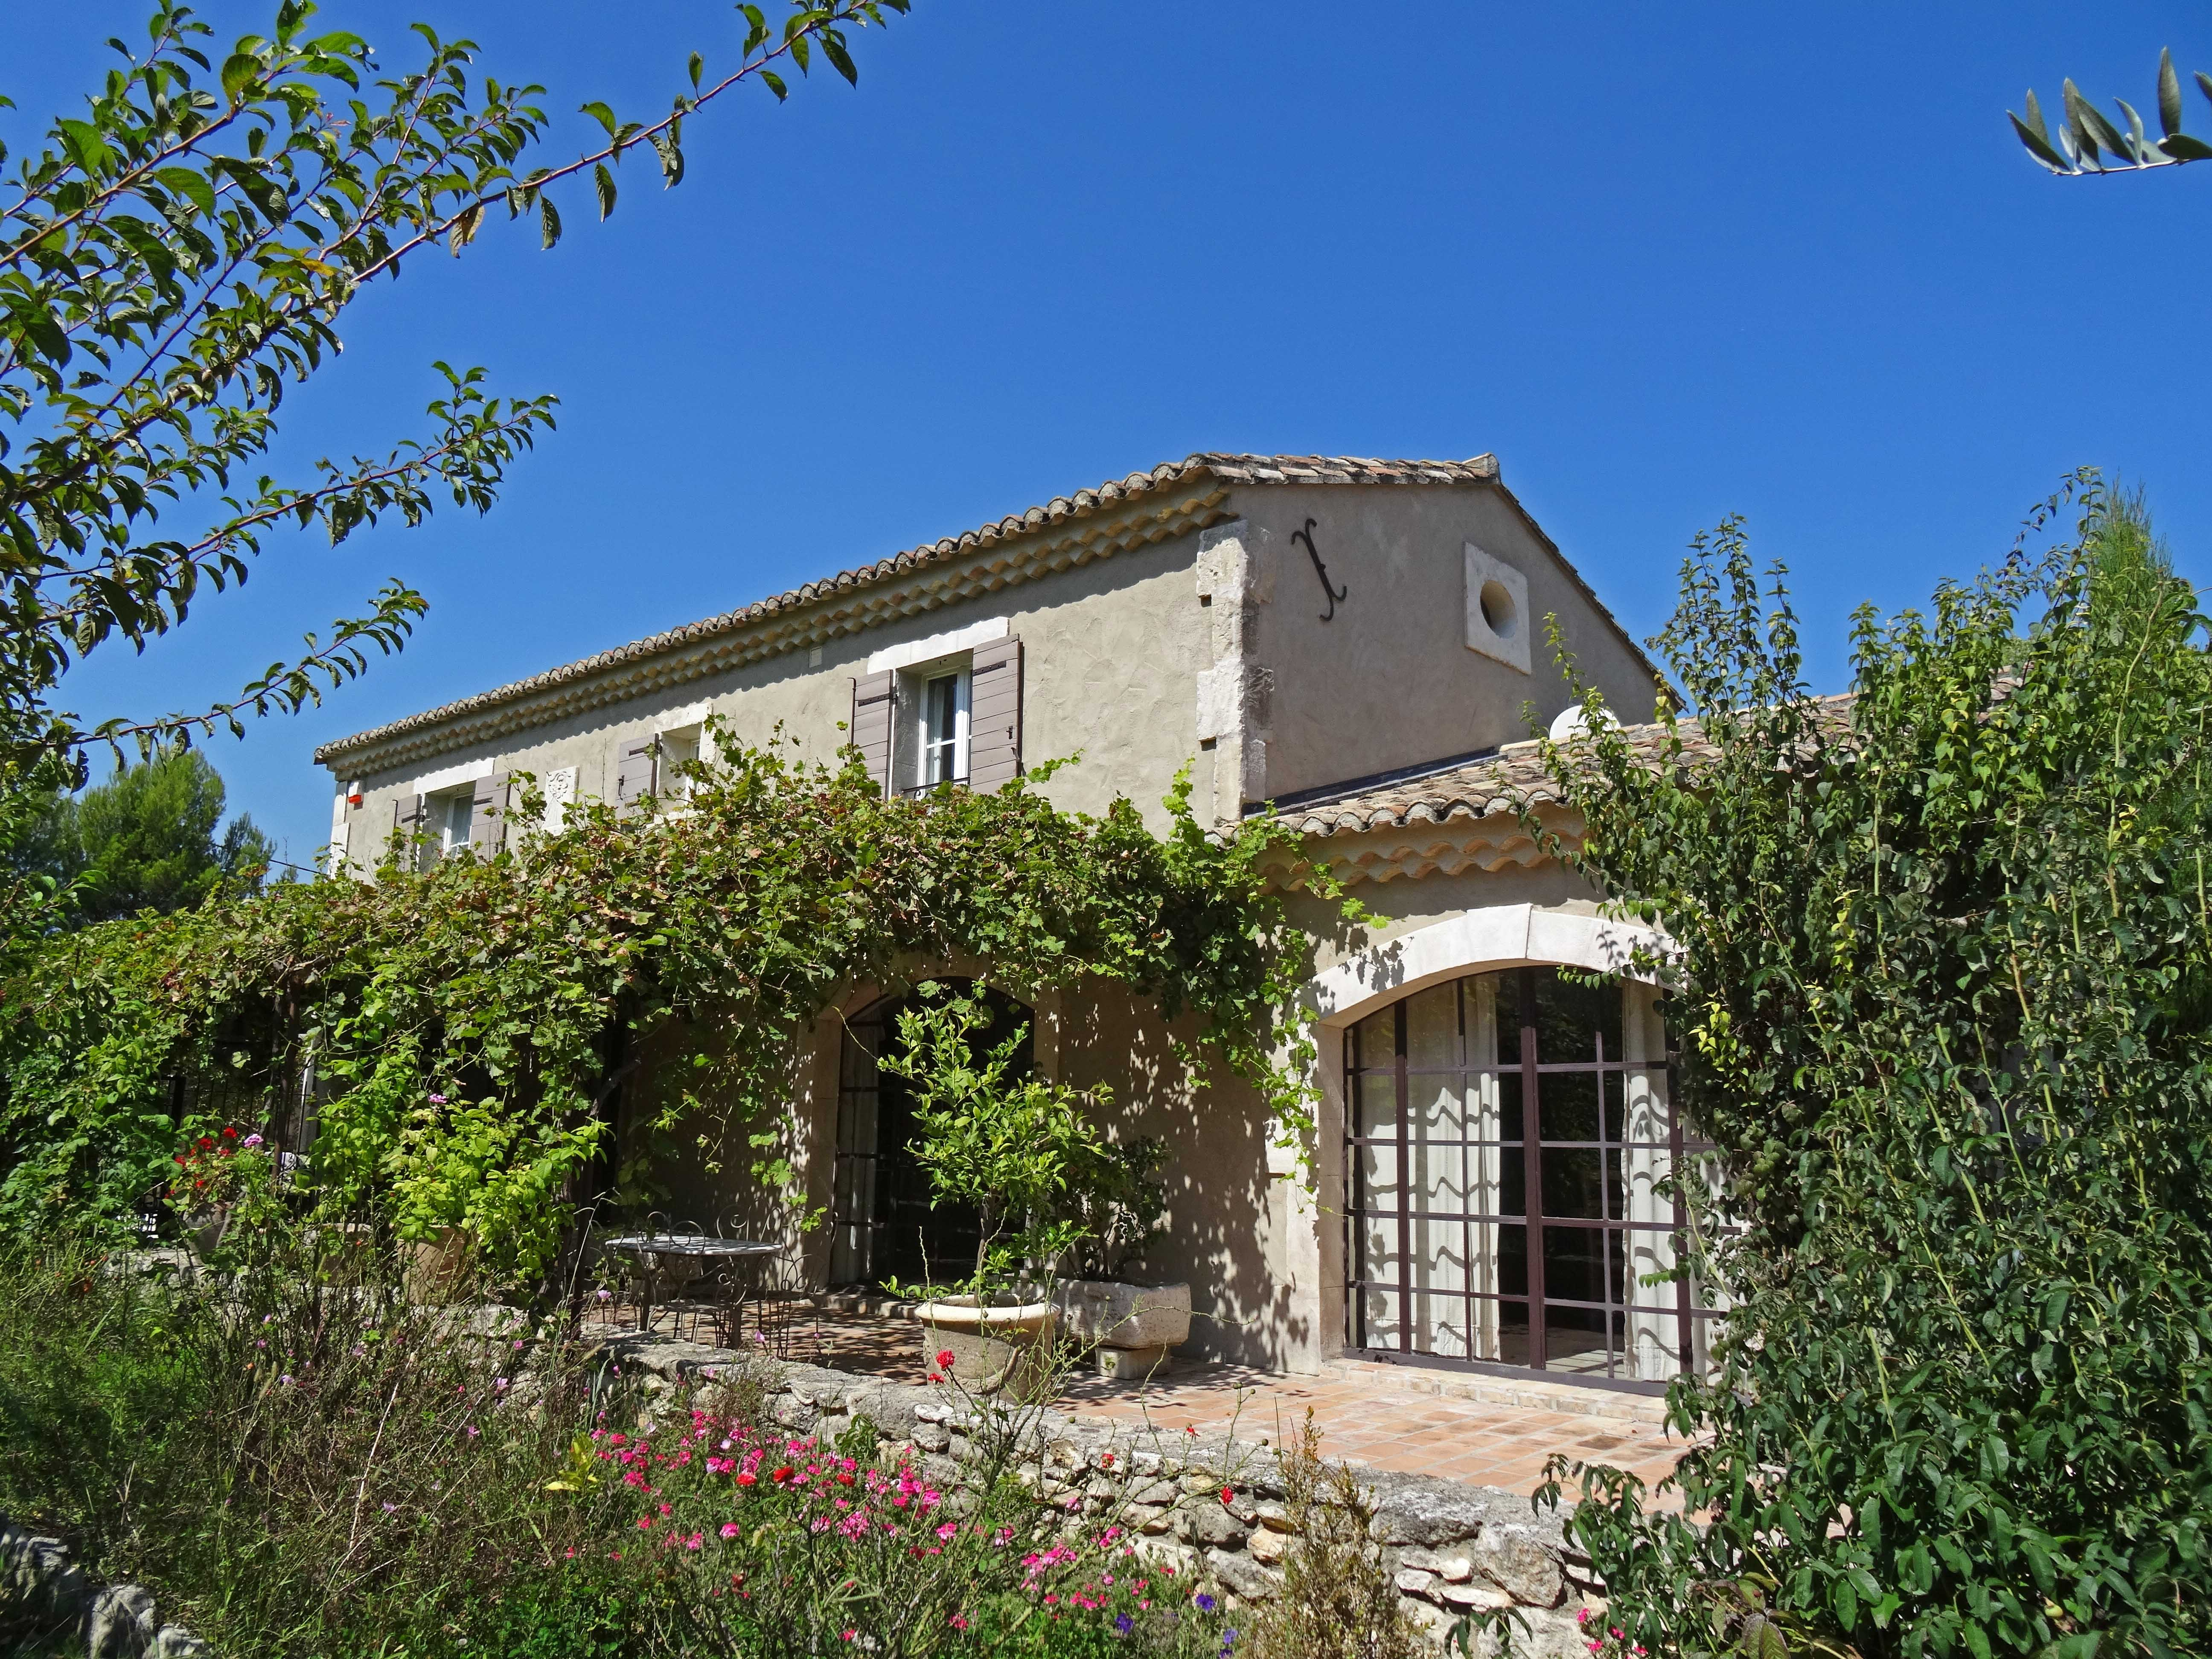 Single Family Home for Sale at Charming stone house in St Remy de Provence Saint Remy De Provence, Provence-Alpes-Cote D'Azur 13210 France